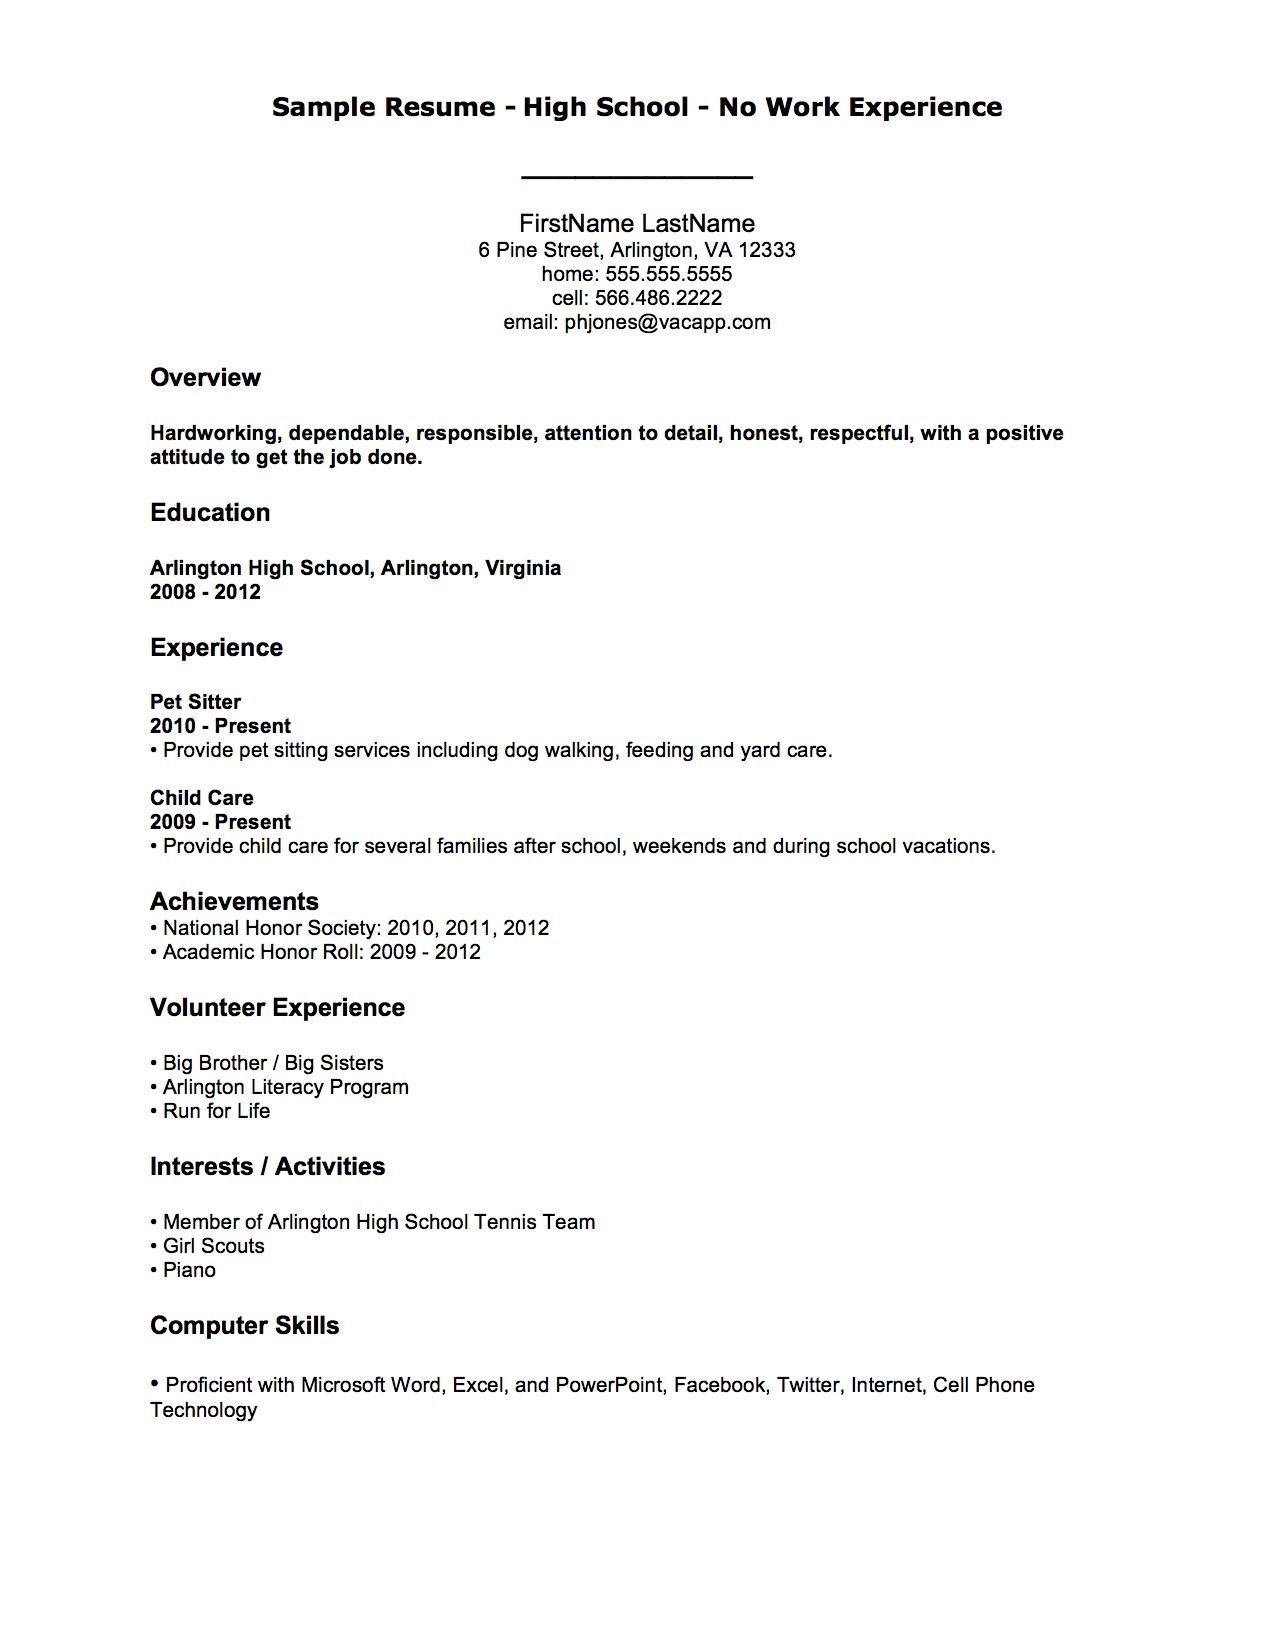 Wonderful No Experience Resumes | Help! I Need A Resume, But I Have No Experience And Resume Without Experience